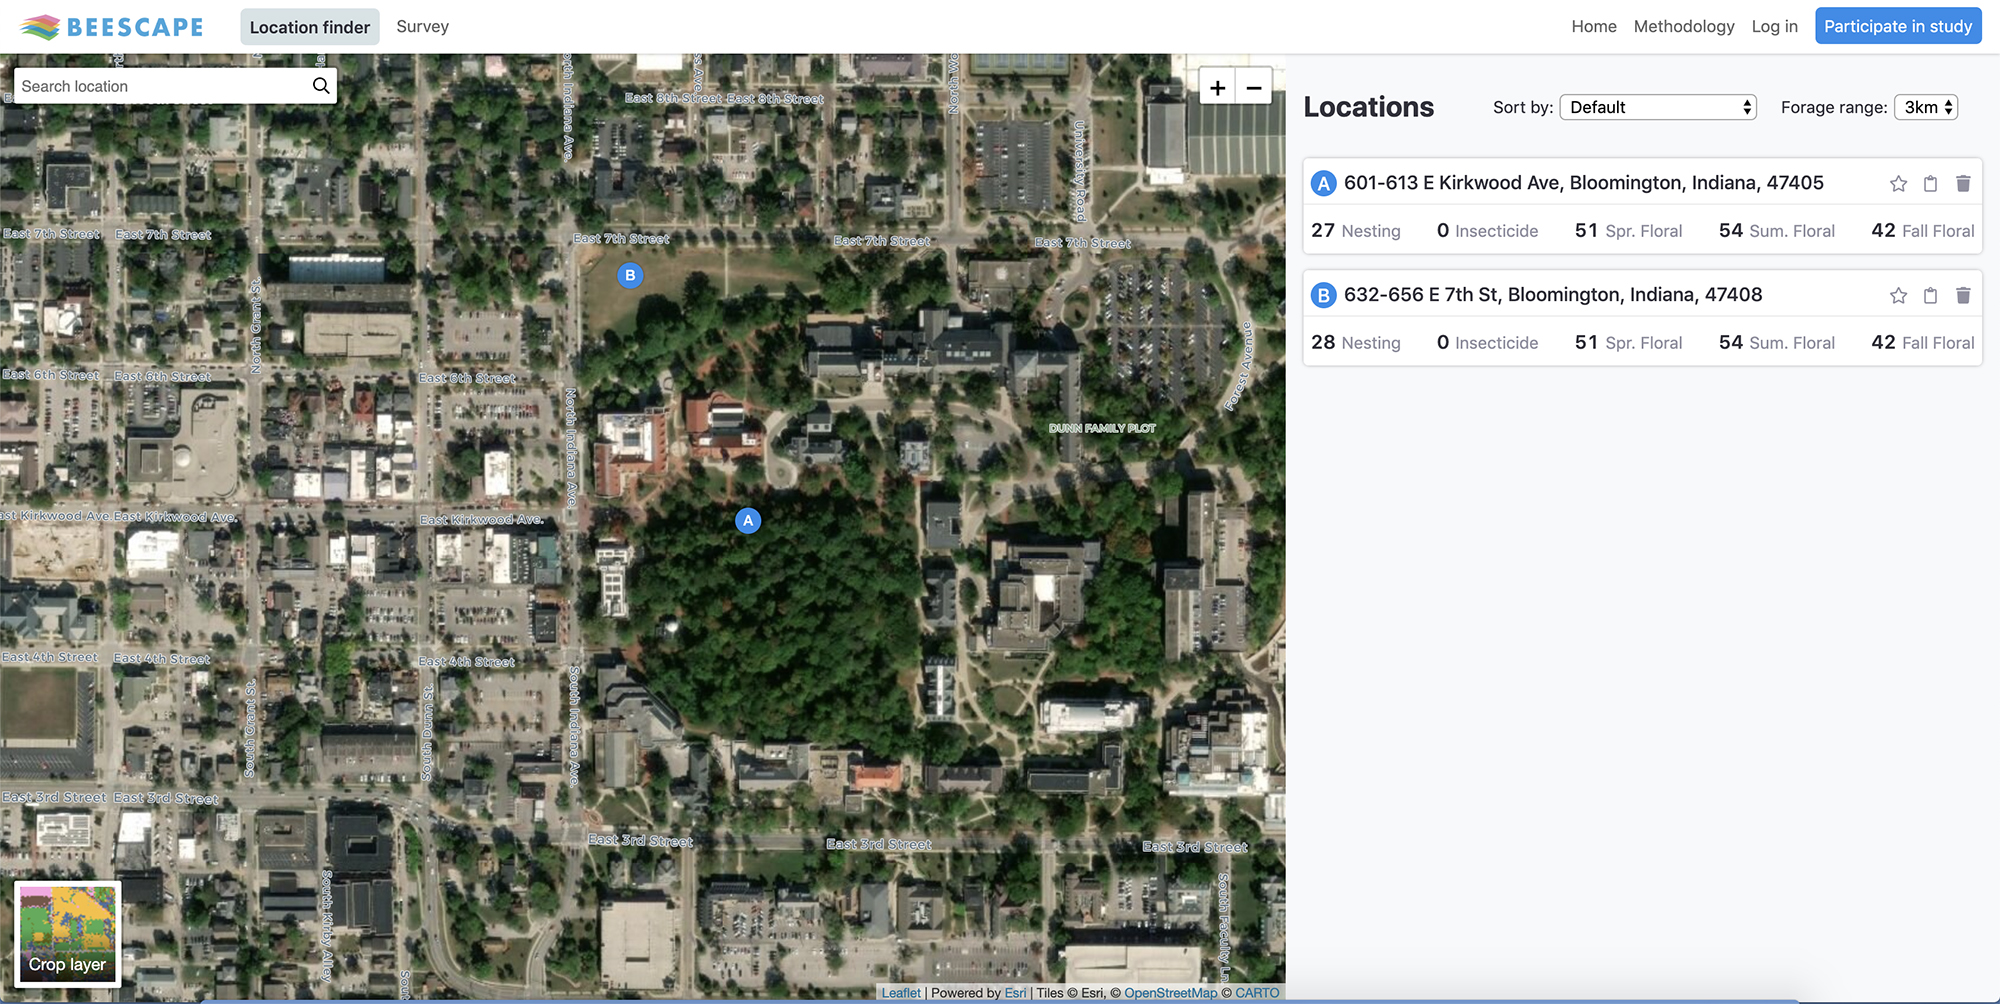 This is a picture of Beescape's map page.